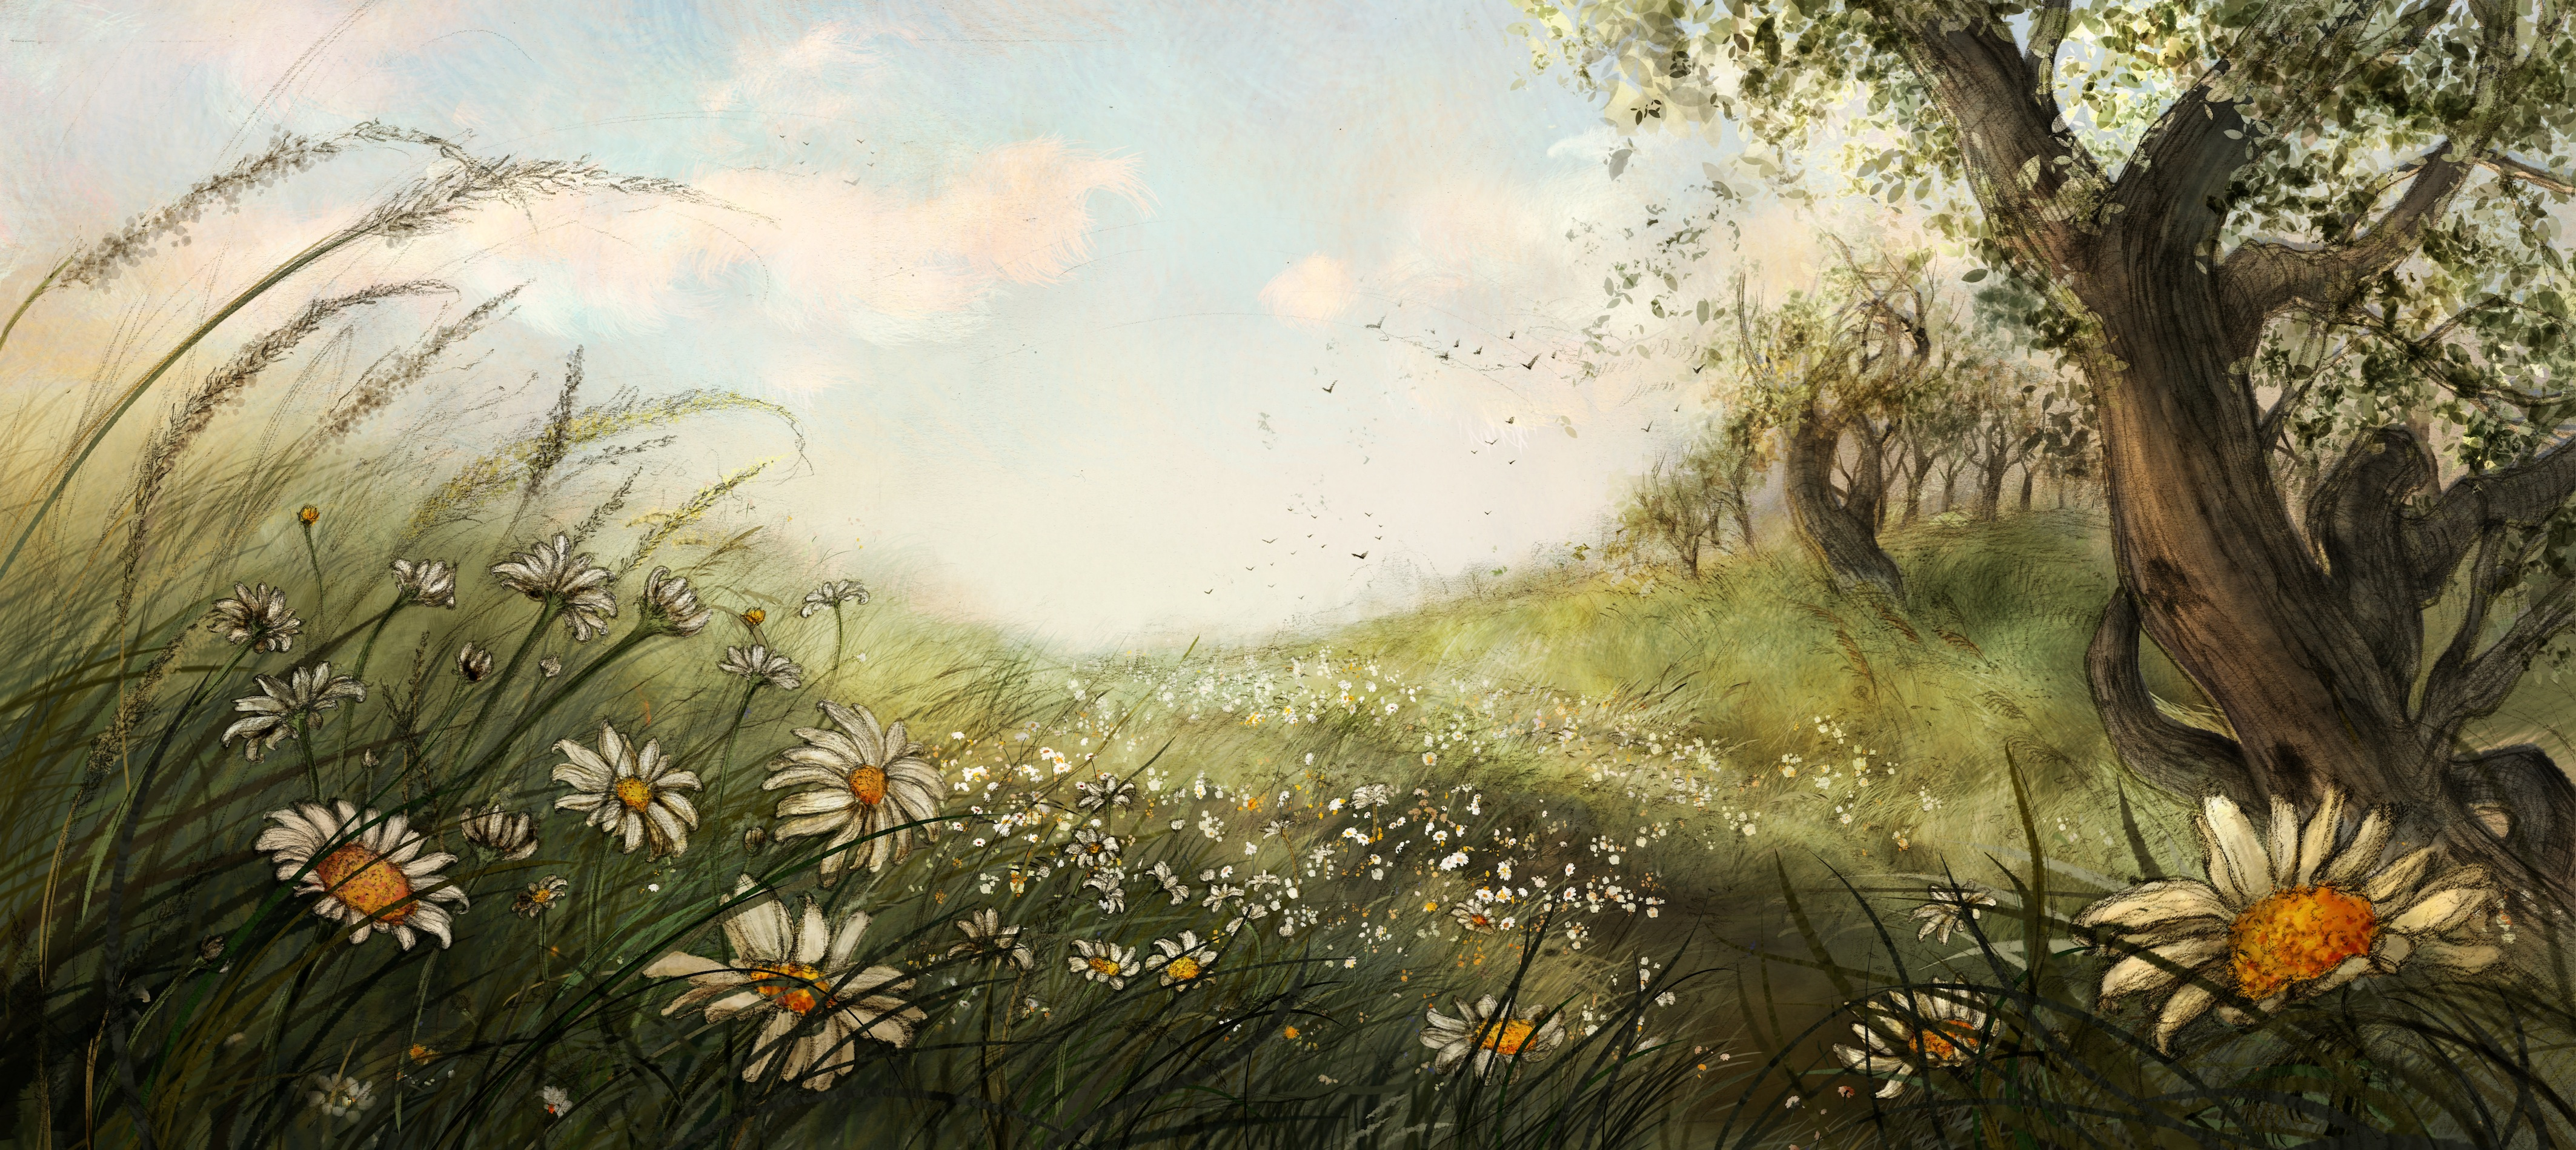 The wild daisy field